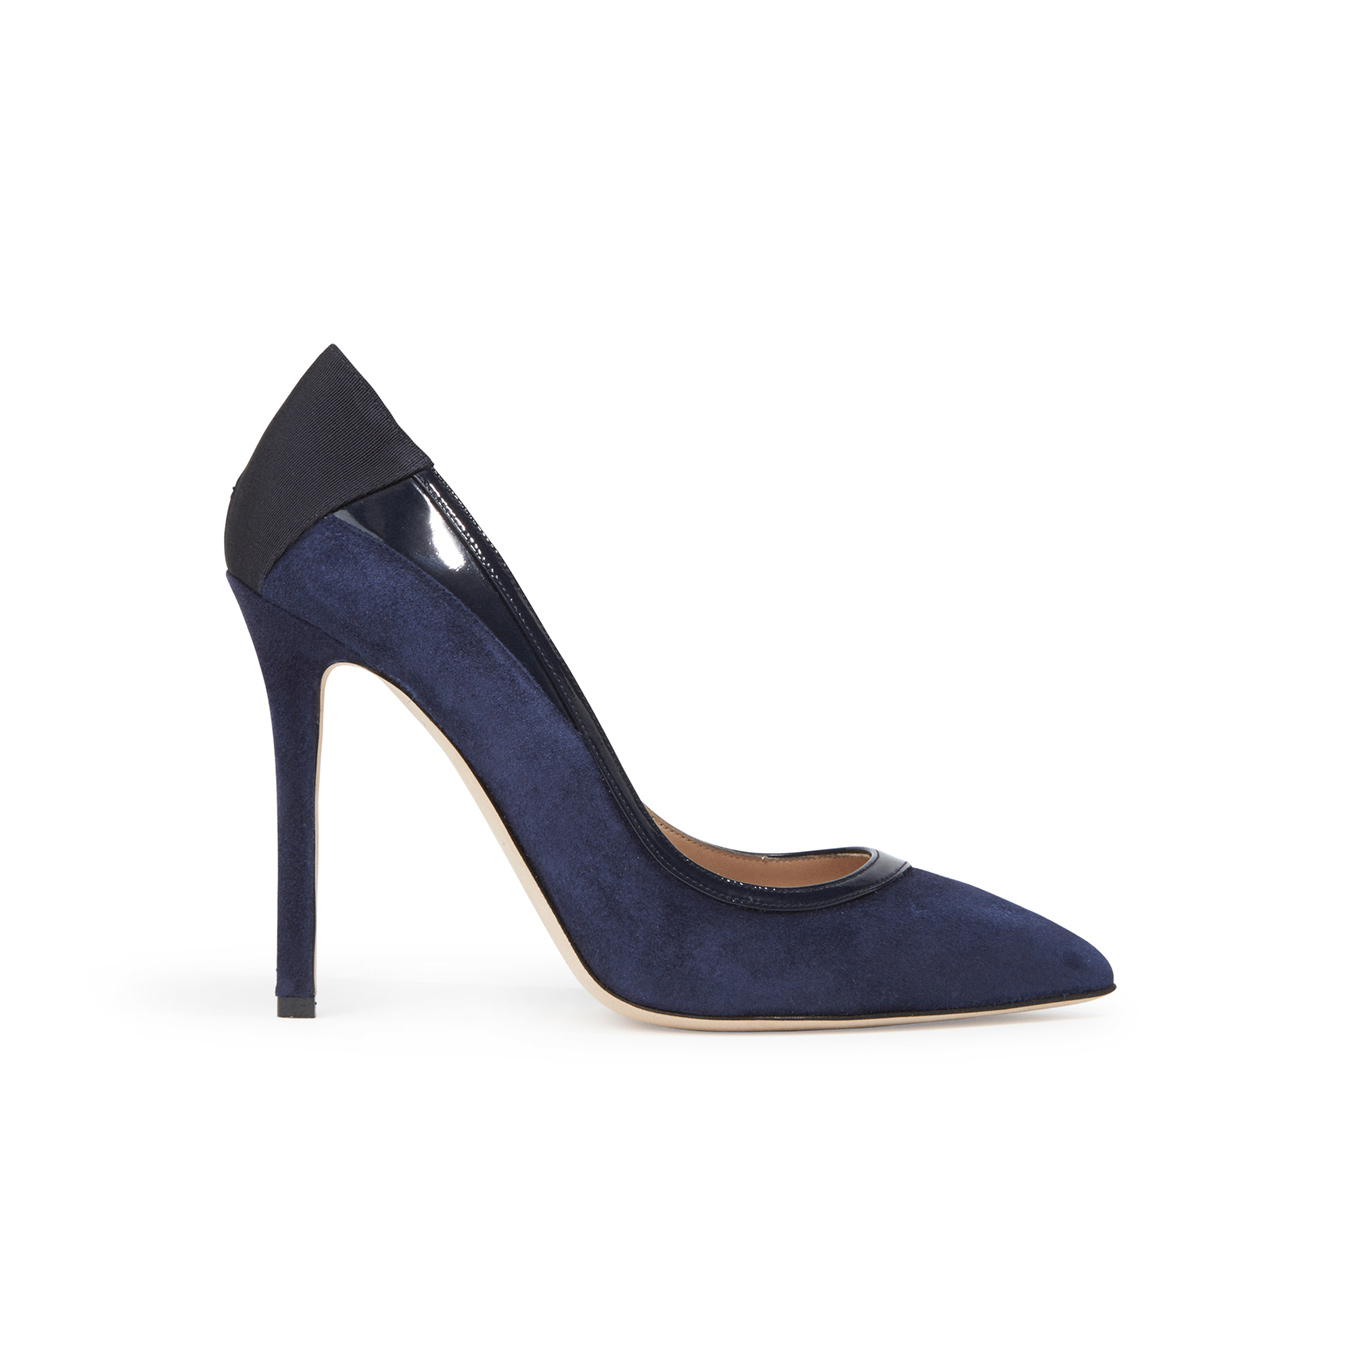 Zac Posen Pumps